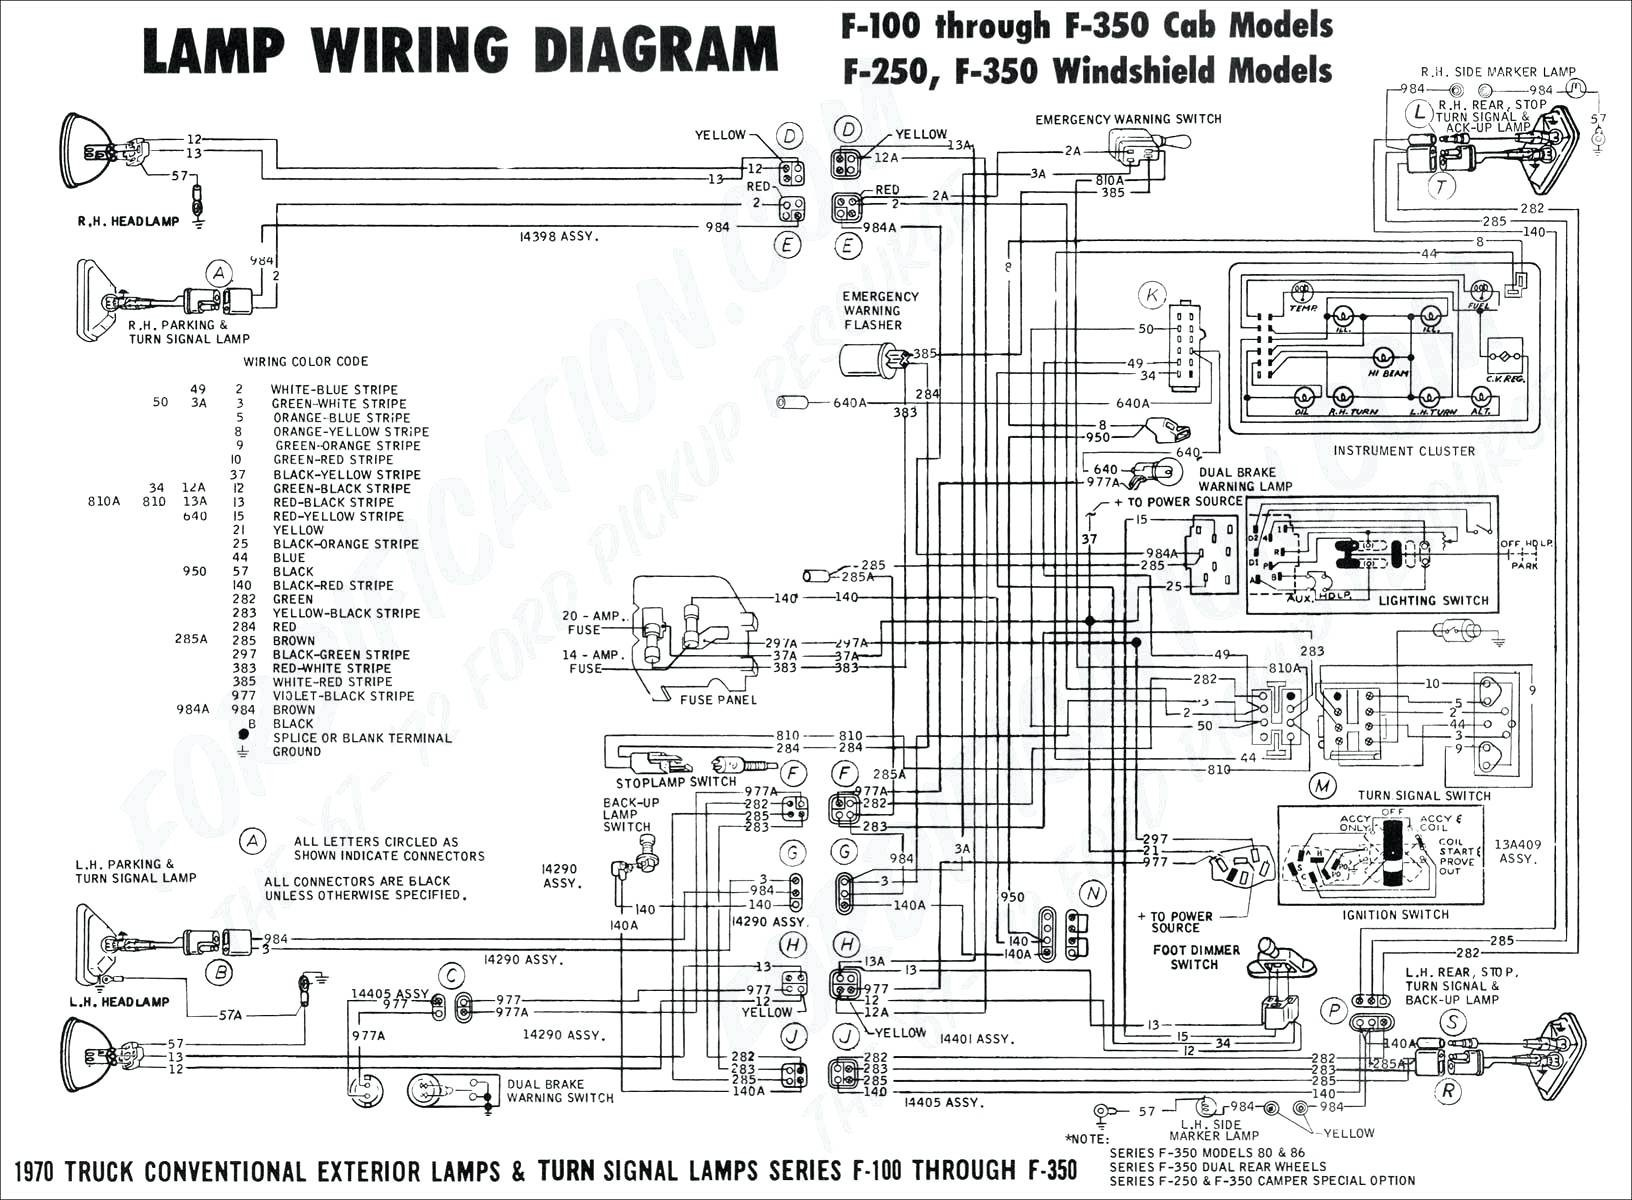 2002 ford F150 Trailer Wiring Harness Download Wiring Diagram Ford F150  Trailer Lights Truck Best